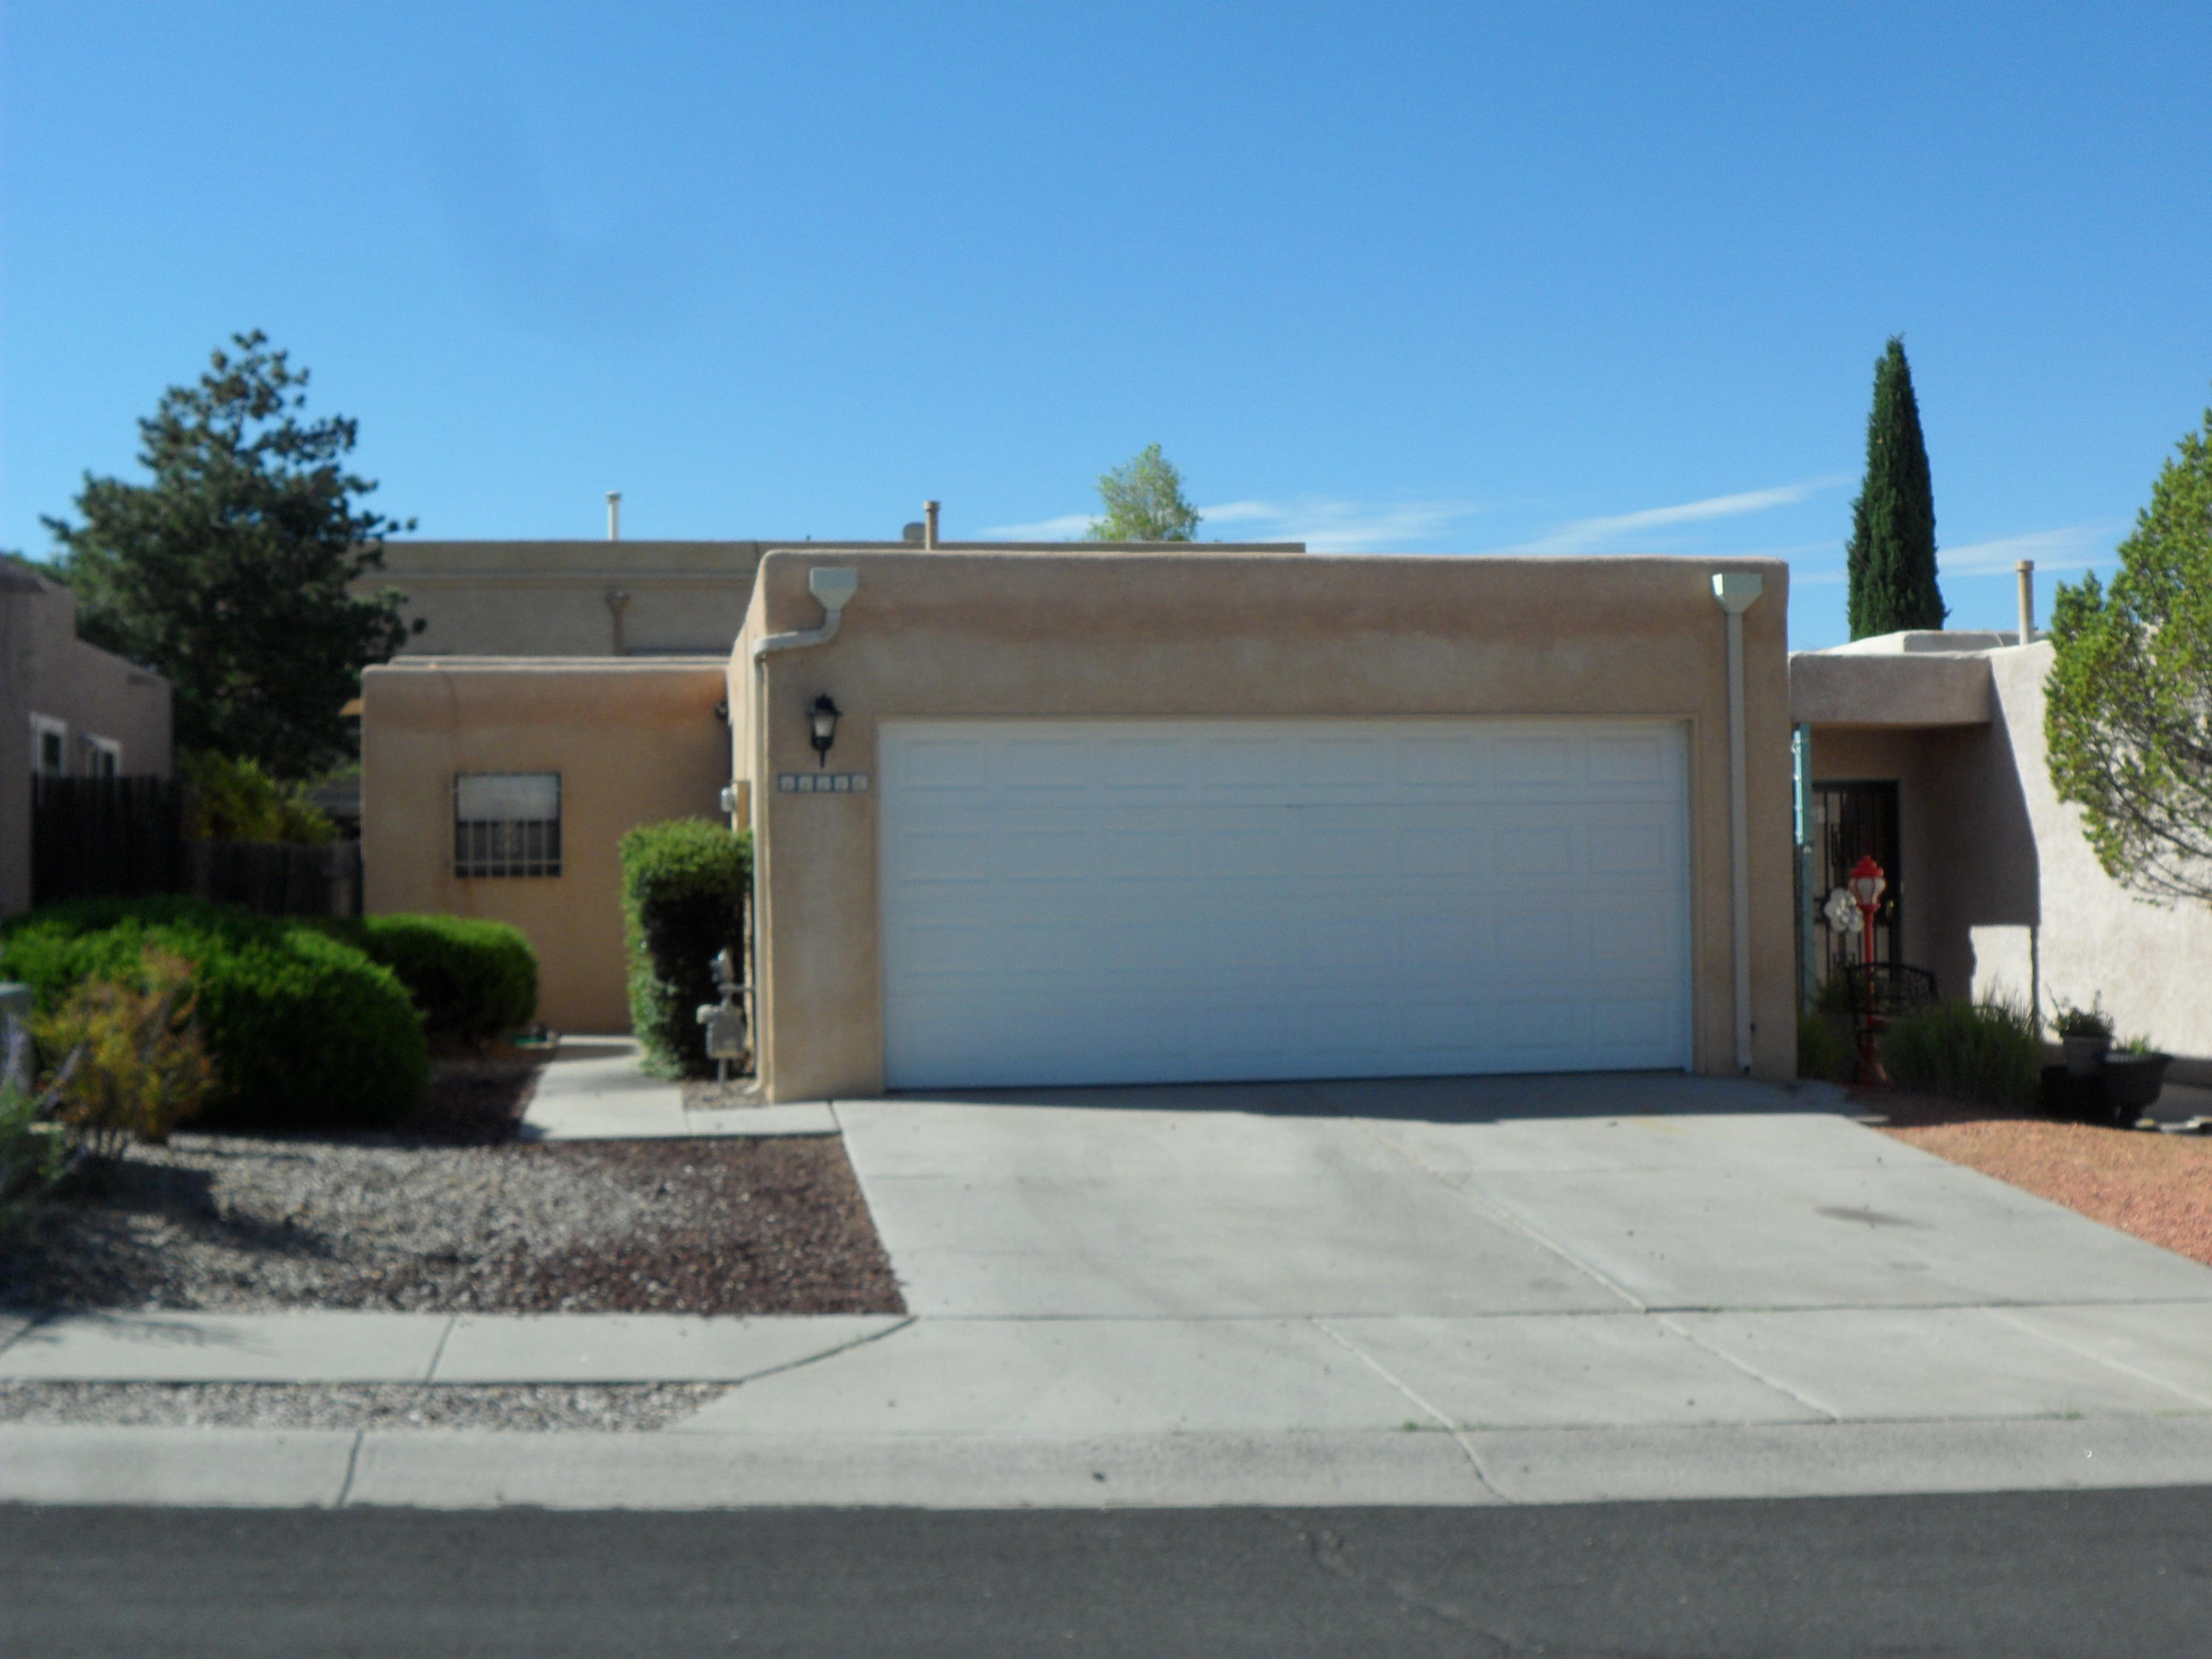 Come view this adorable townhouse in the North East heights with views of the Sandia's! 2 BR  & 2 BA with new blinds, carpeting and newer vinyl planking. Oversized two car garage and new water heater in 2019. This location is fantastic, near shopping, restaurants and a path.  No Sellers disclosure will be provided.